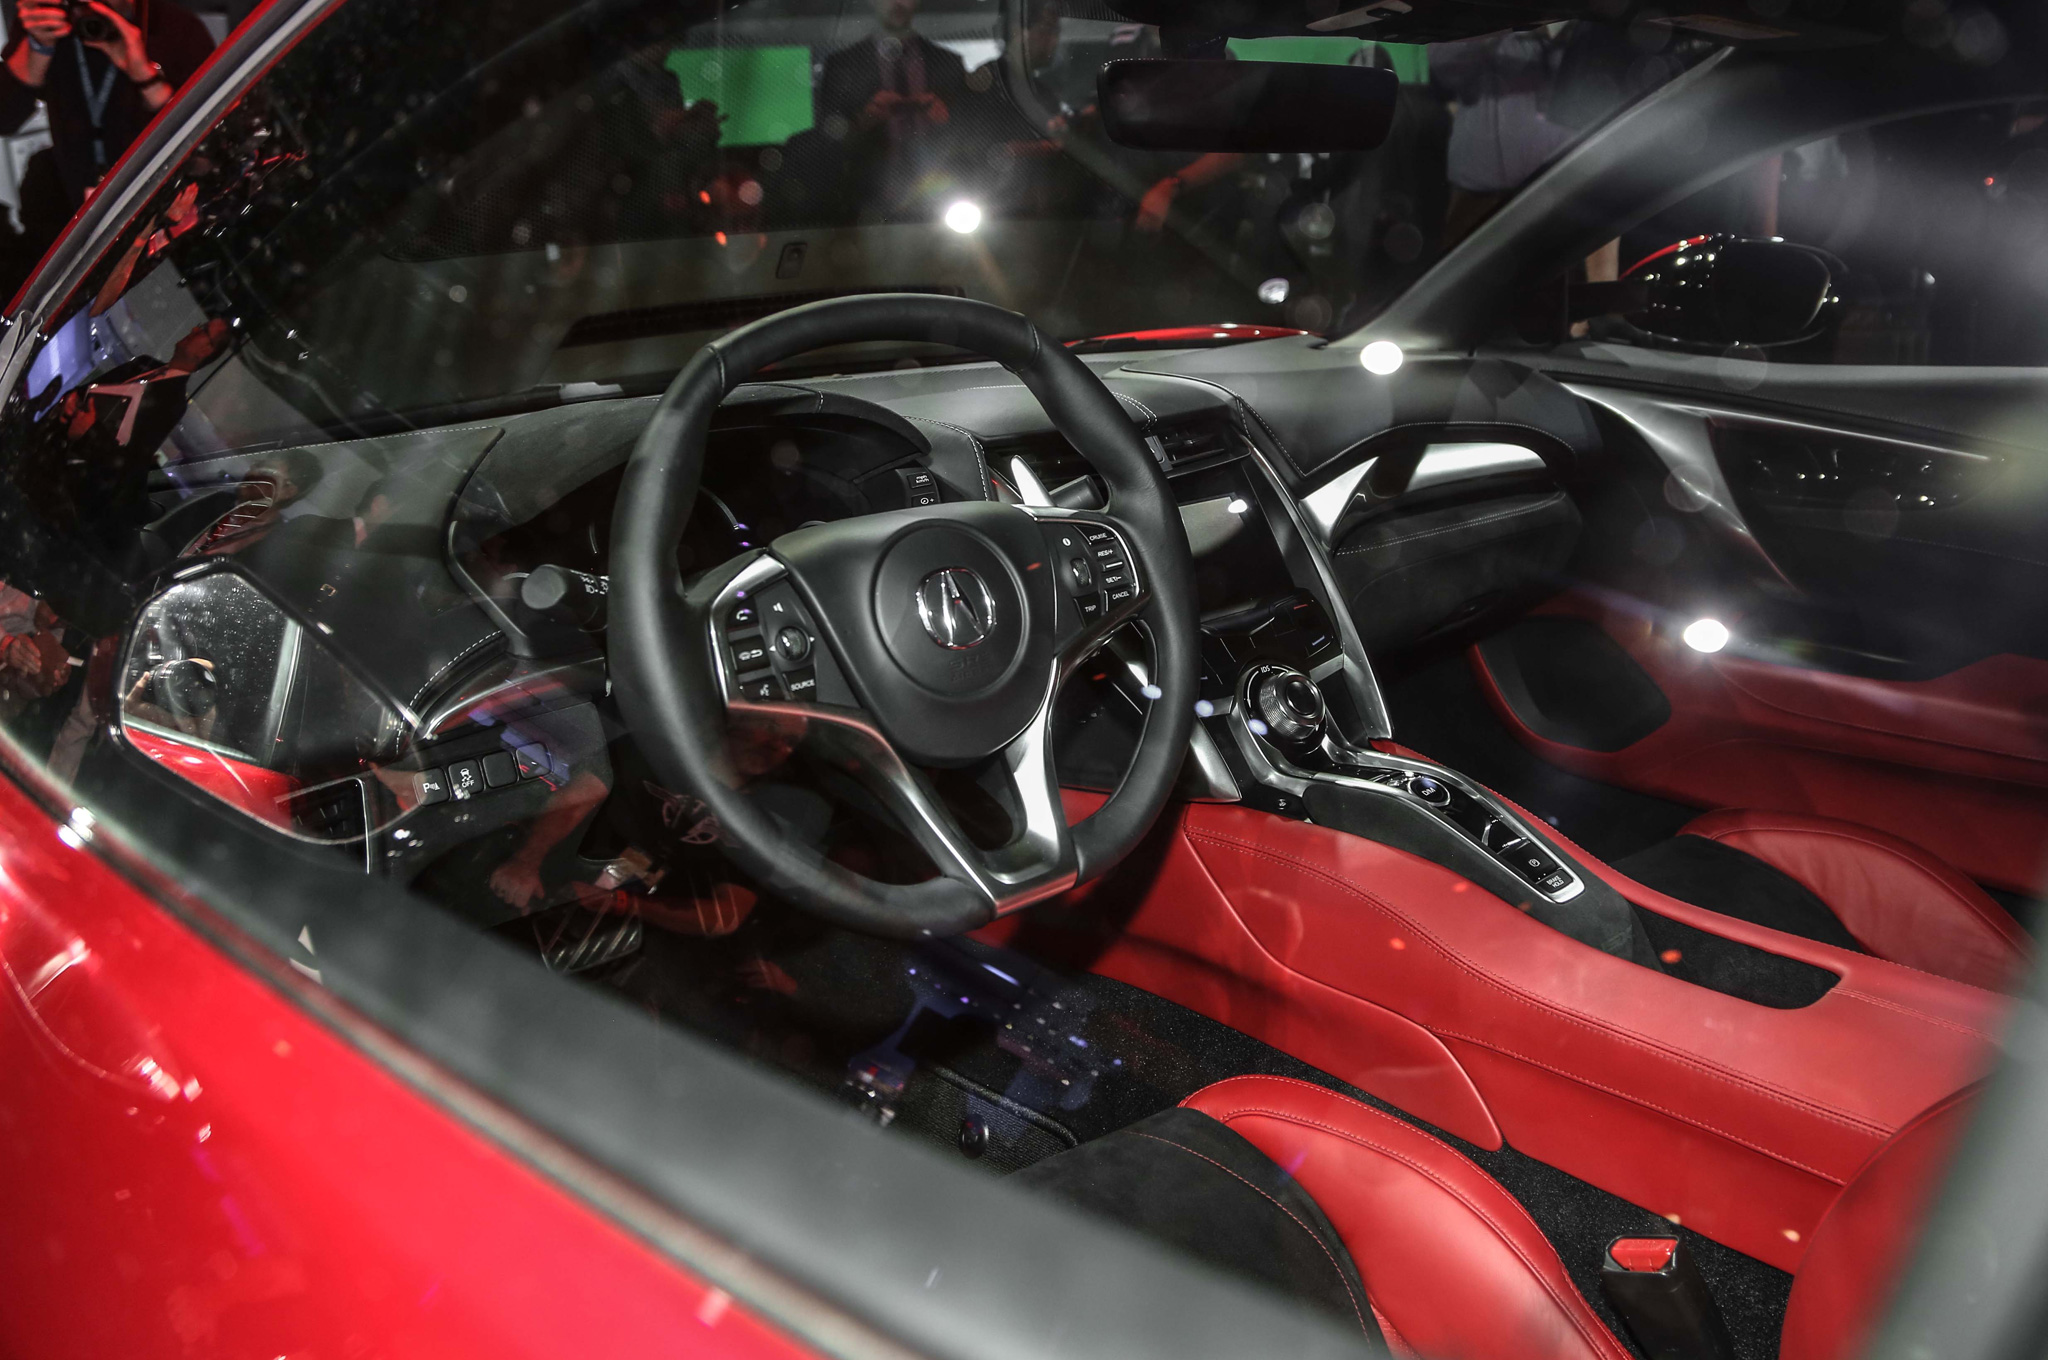 2016 Acura NSX Cockpit Photo